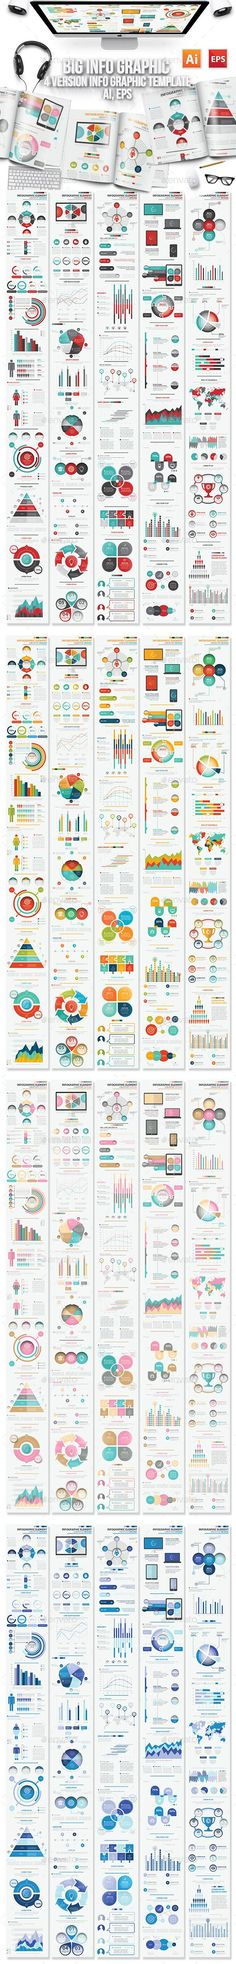 Info Graphic Elements Design — Vector EPS #piece #illustrator • Available here → https://graphicriver.net/item/info-graphic-elements-design/11938172?ref=pxcr